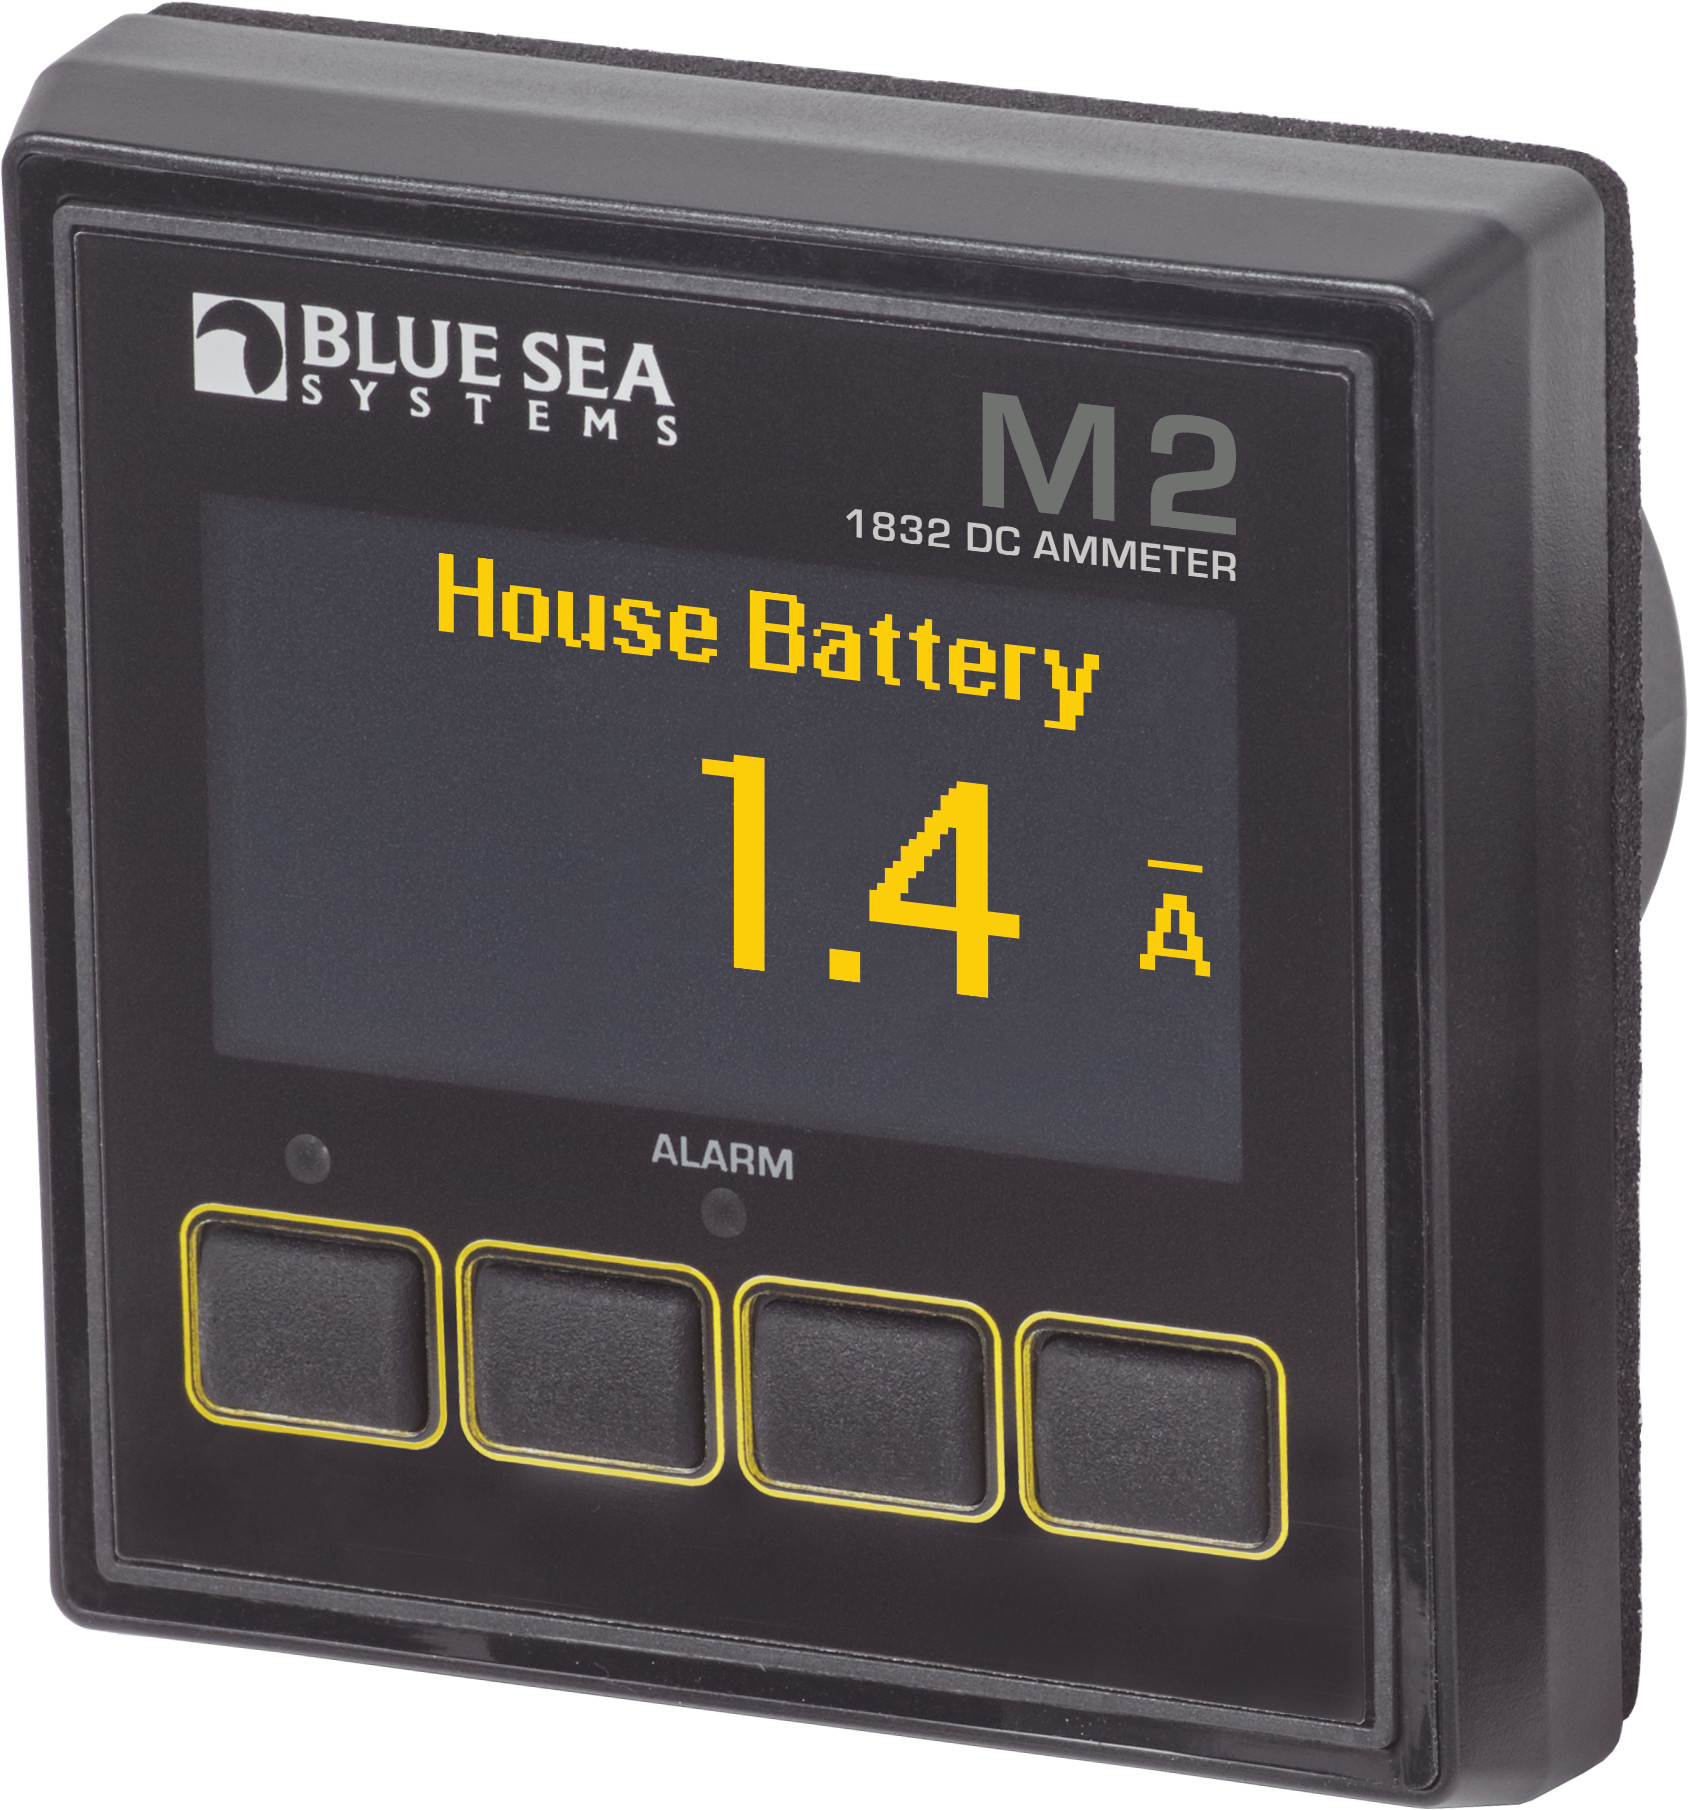 M2 DC Ammeter - Blue Sea Systems